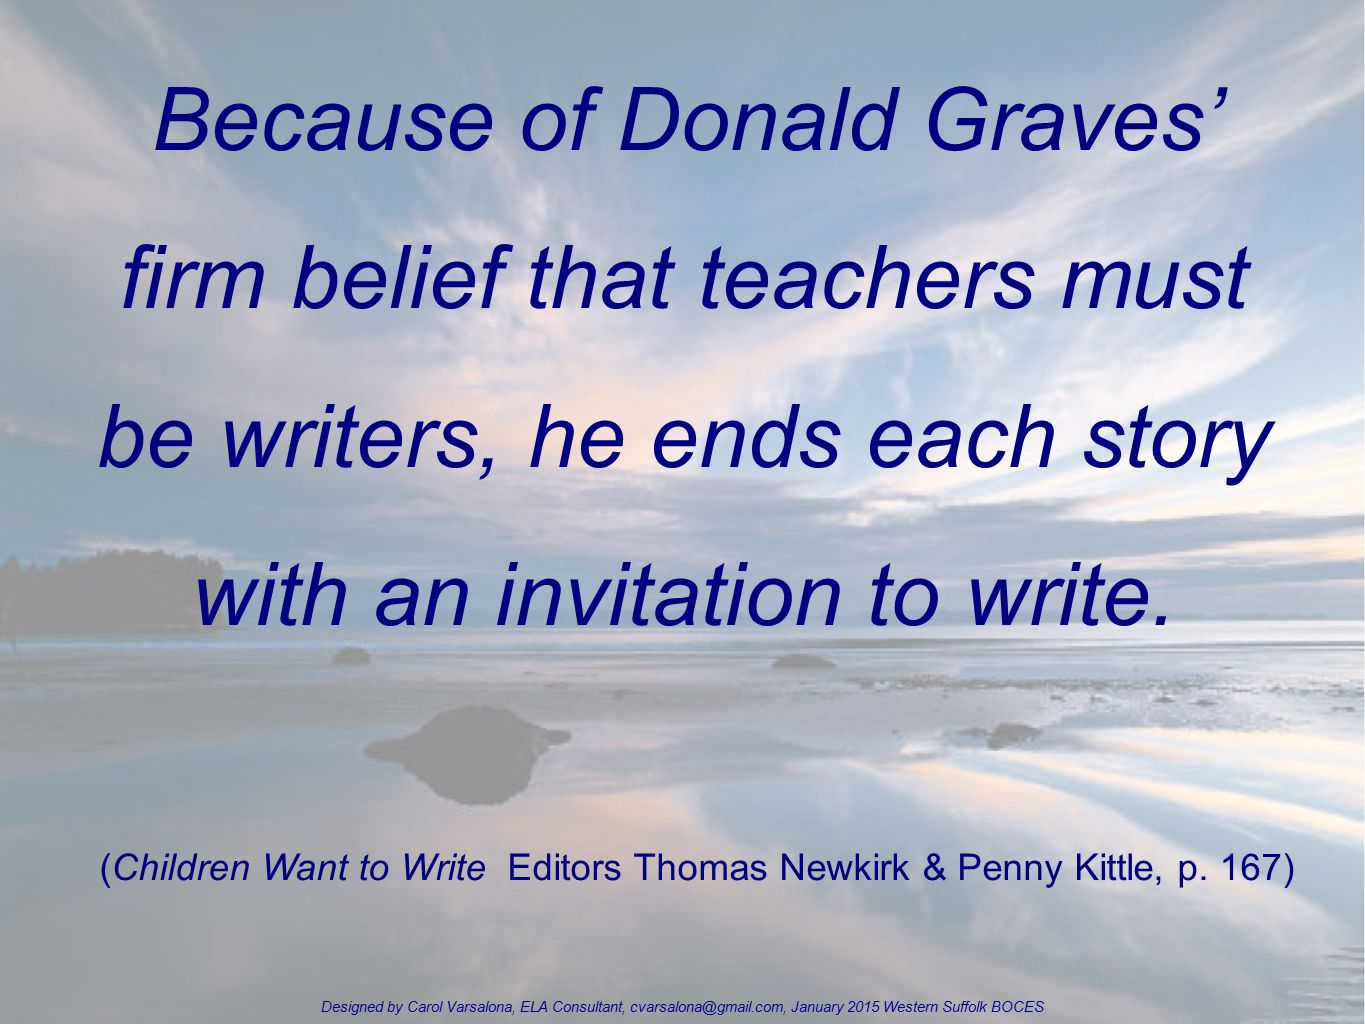 Because of Donald Graves' firm belief that teachers must be writers, he ends each story with an invitation to write.